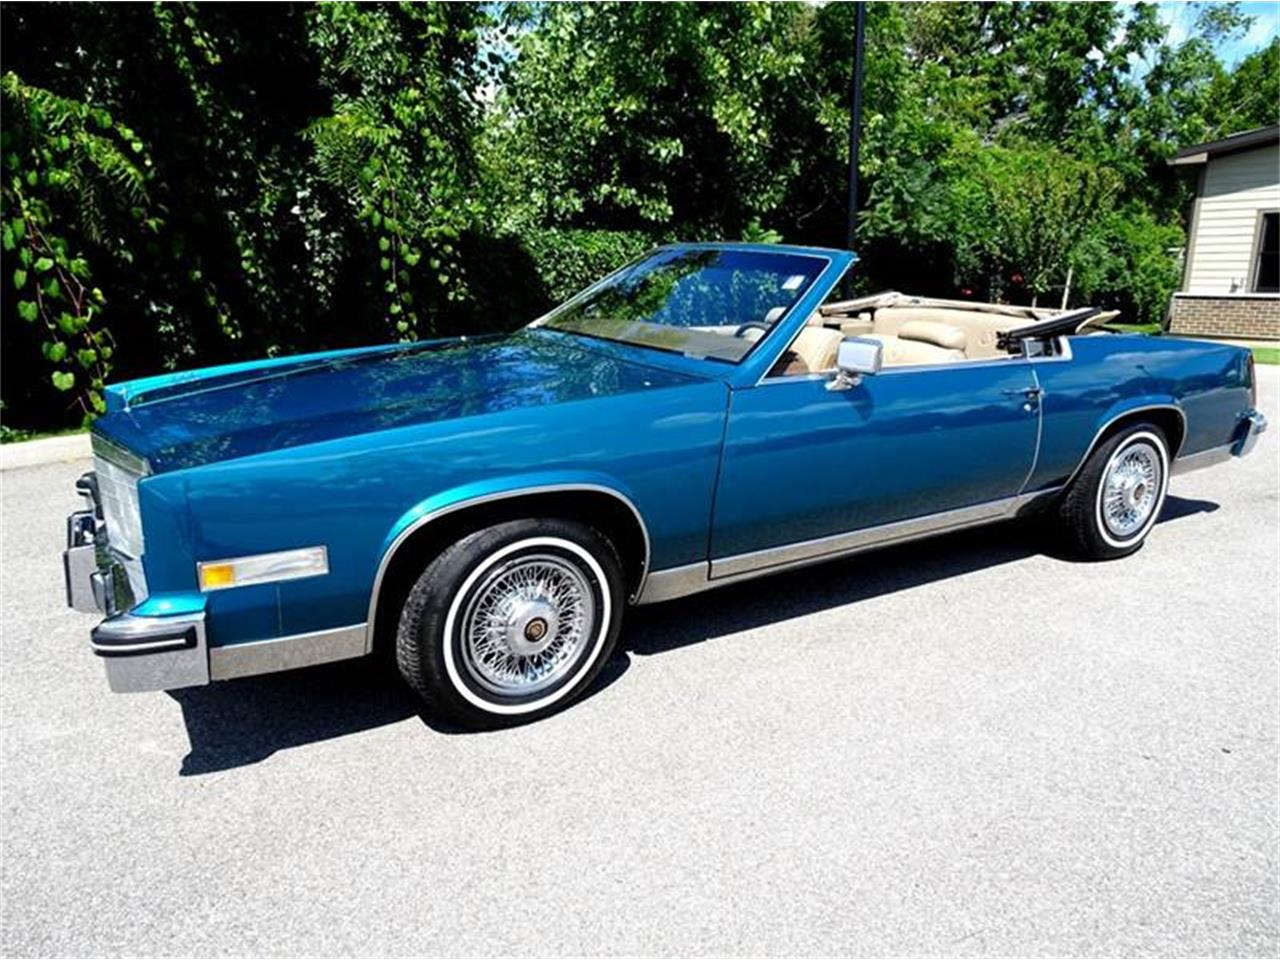 1981 cadillac eldorado for sale classiccars com cc 1004673 1981 cadillac eldorado for sale